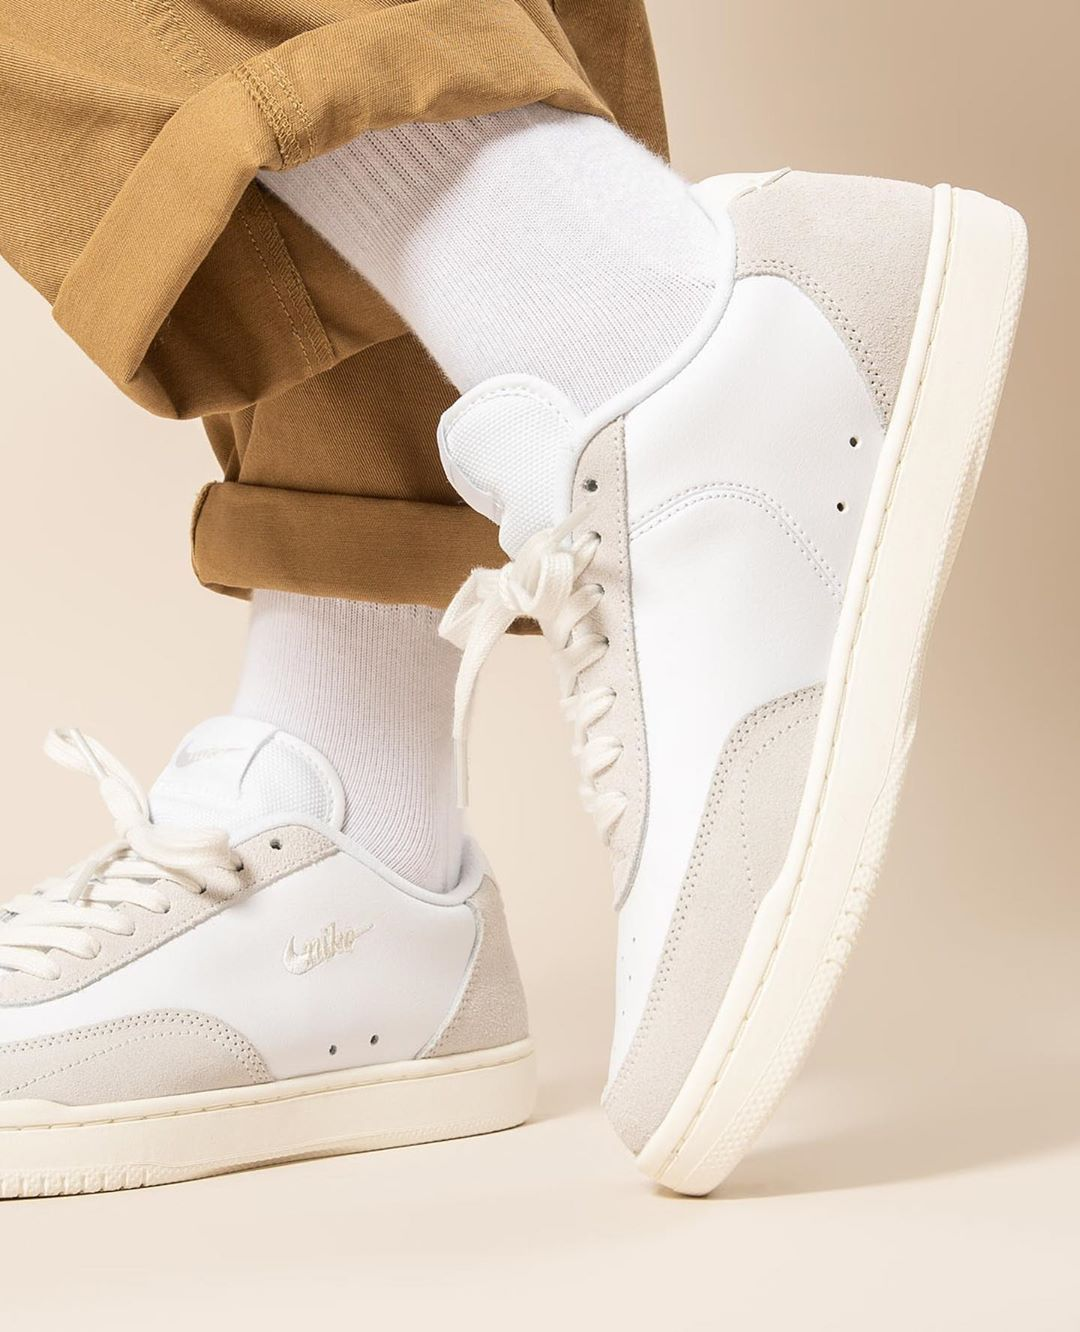 Titolo Sneaker Boutique On Instagram Embodying 80s Tennis At Its Best Laid Back And Stylish The Nike Court V In 2020 Sneaker Boutique Vintage Nike Sneakers